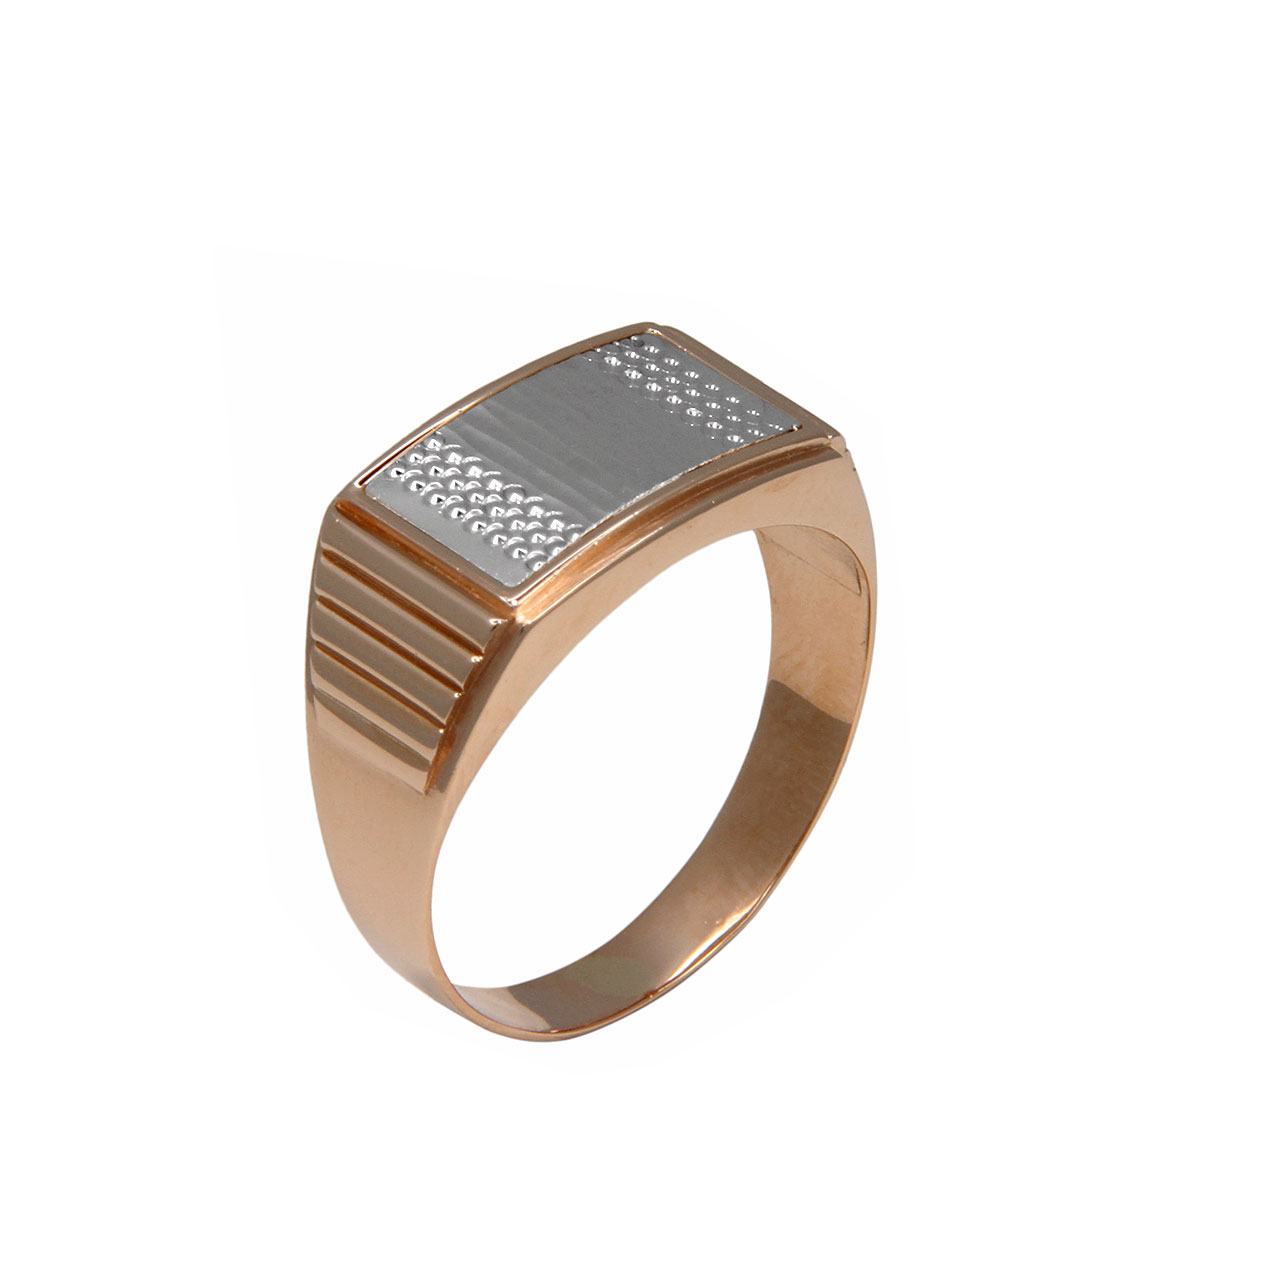 Rose gold men signet 1